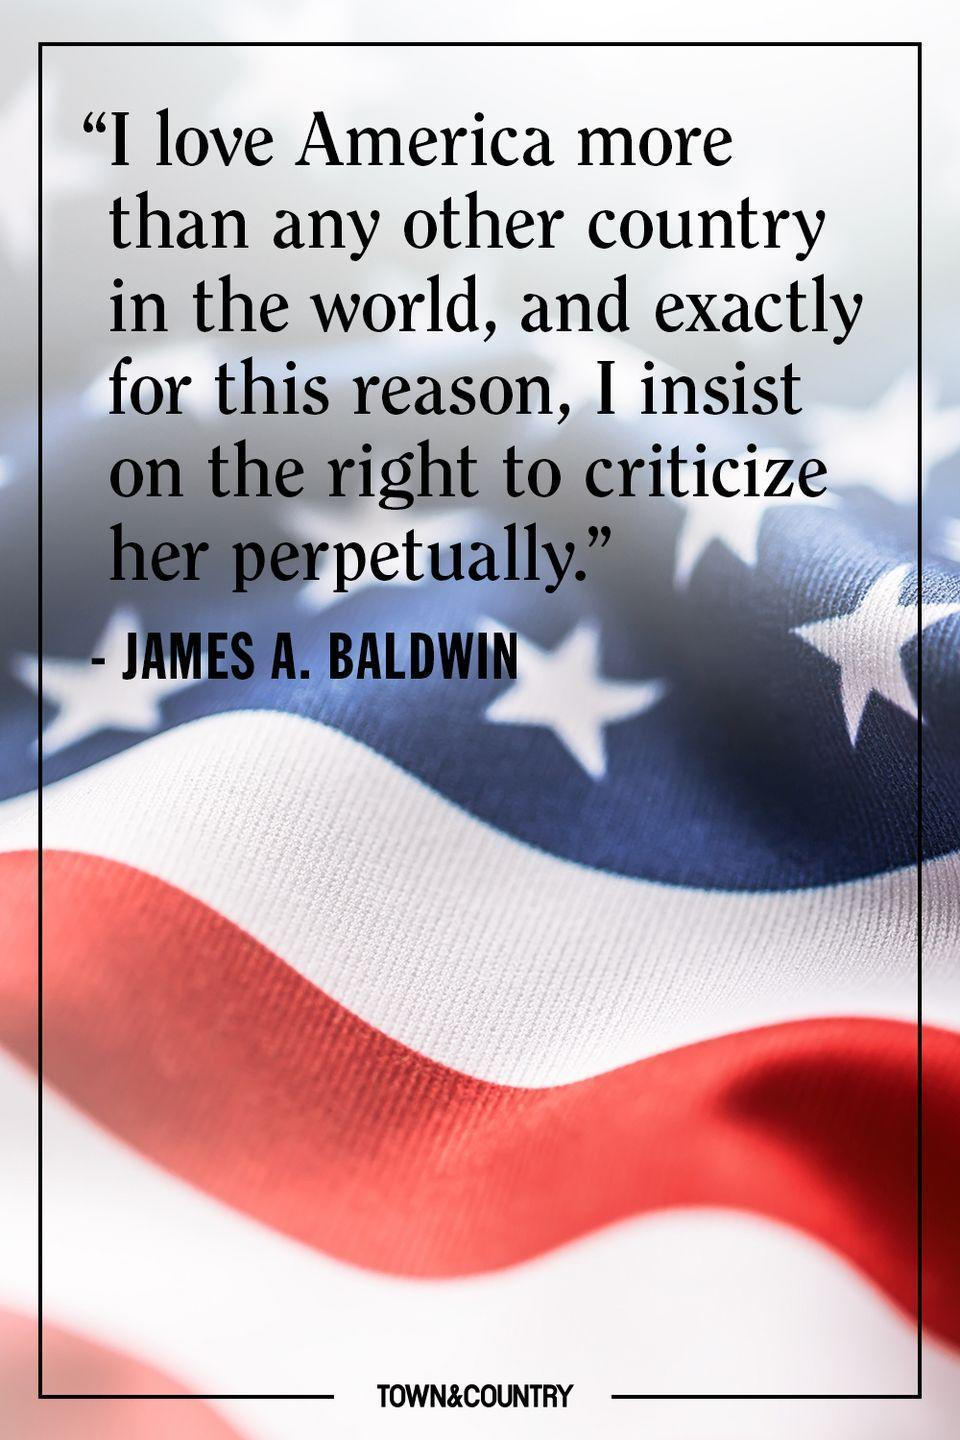 "<p>""I love America more than any other country in the world, and exactly for this reason, I insist on the right to criticize her perpetually.""</p><p>– James A. Baldwin</p>"